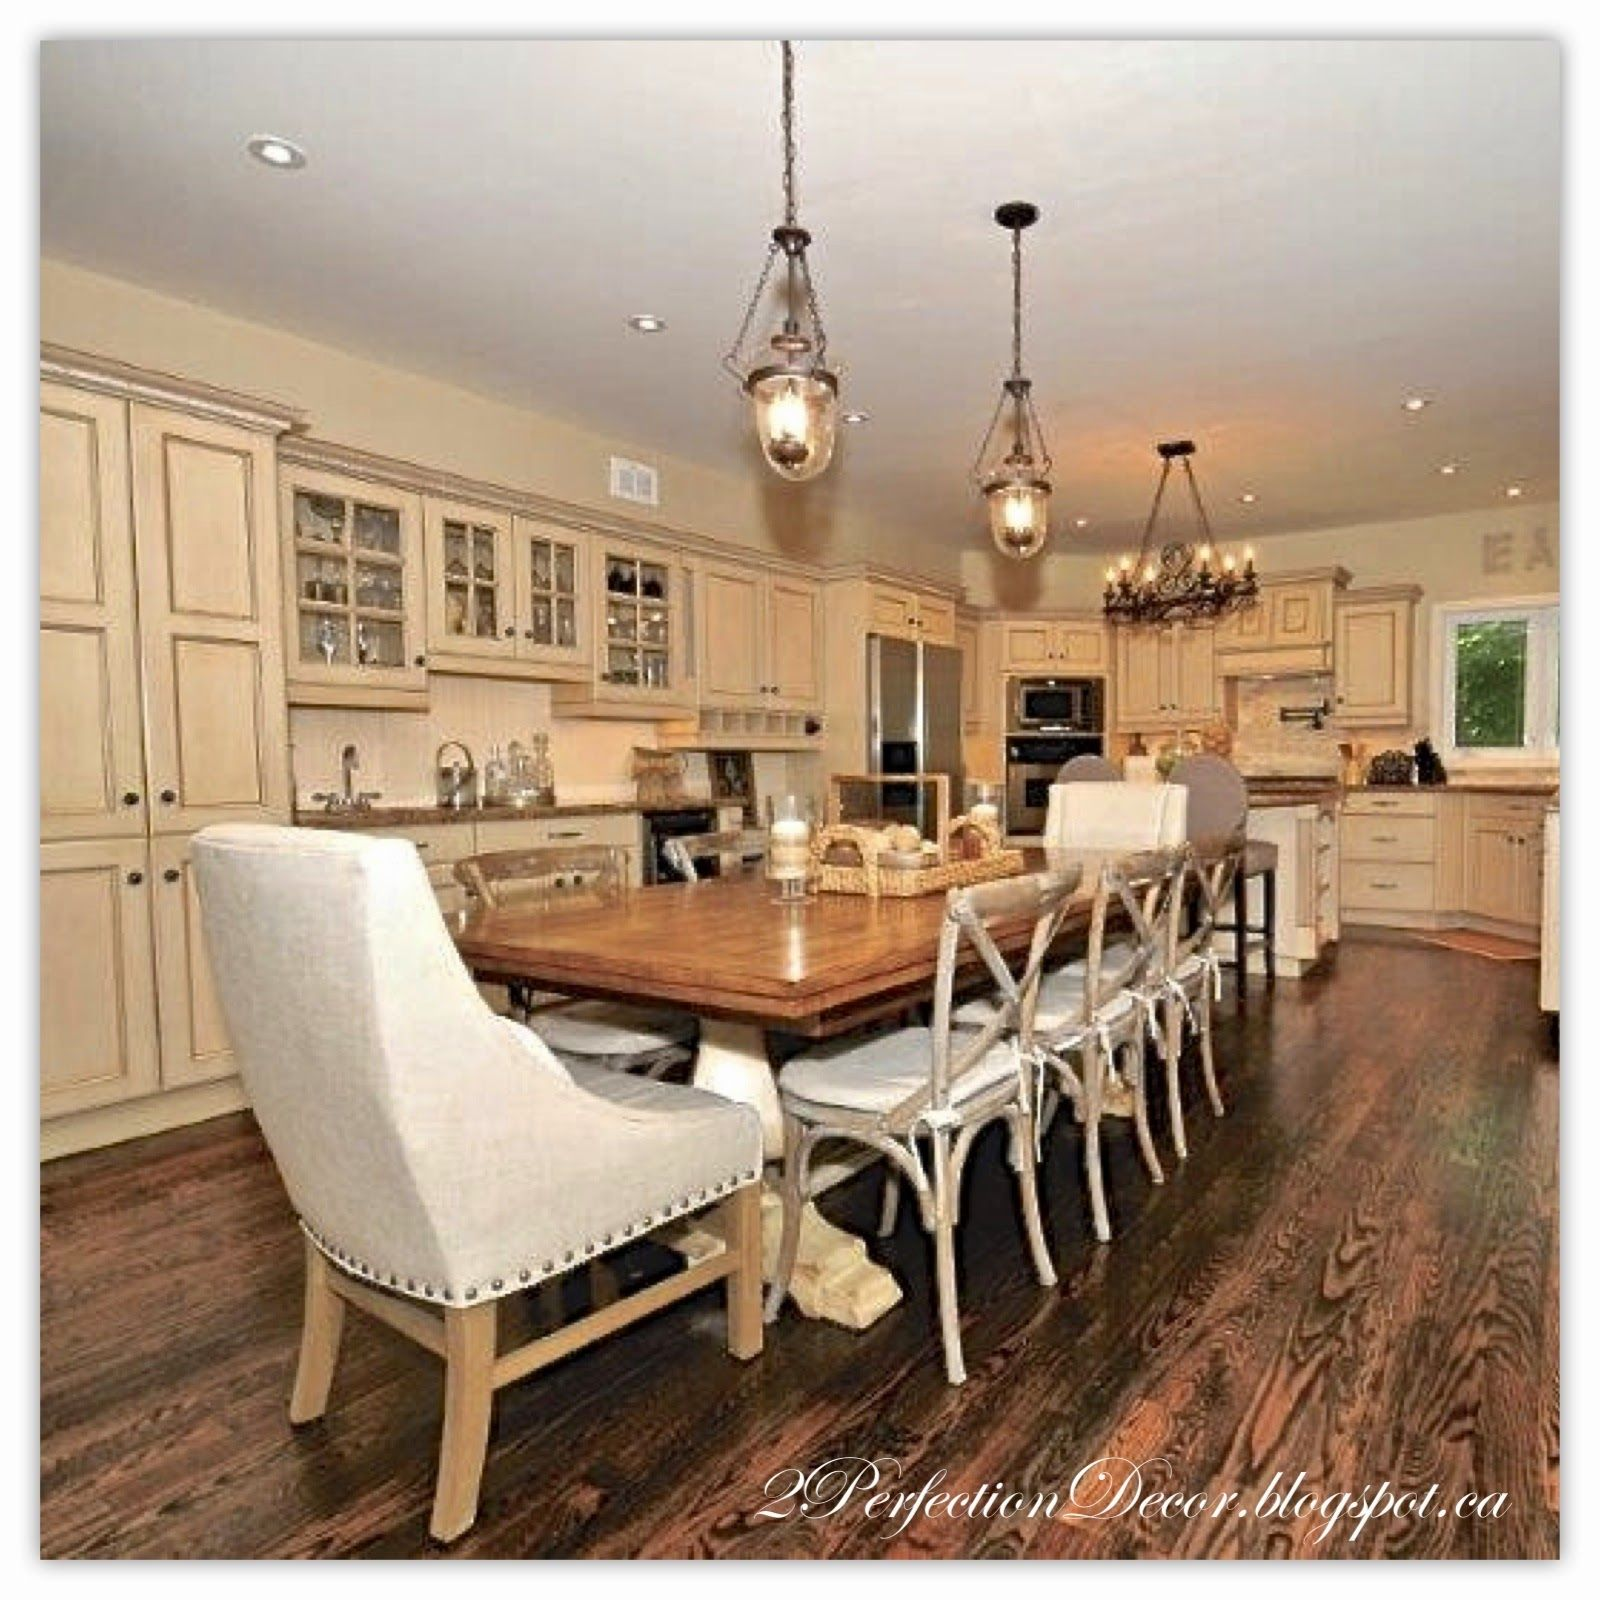 Our House 2 Final Reveal home tour french country kitchen